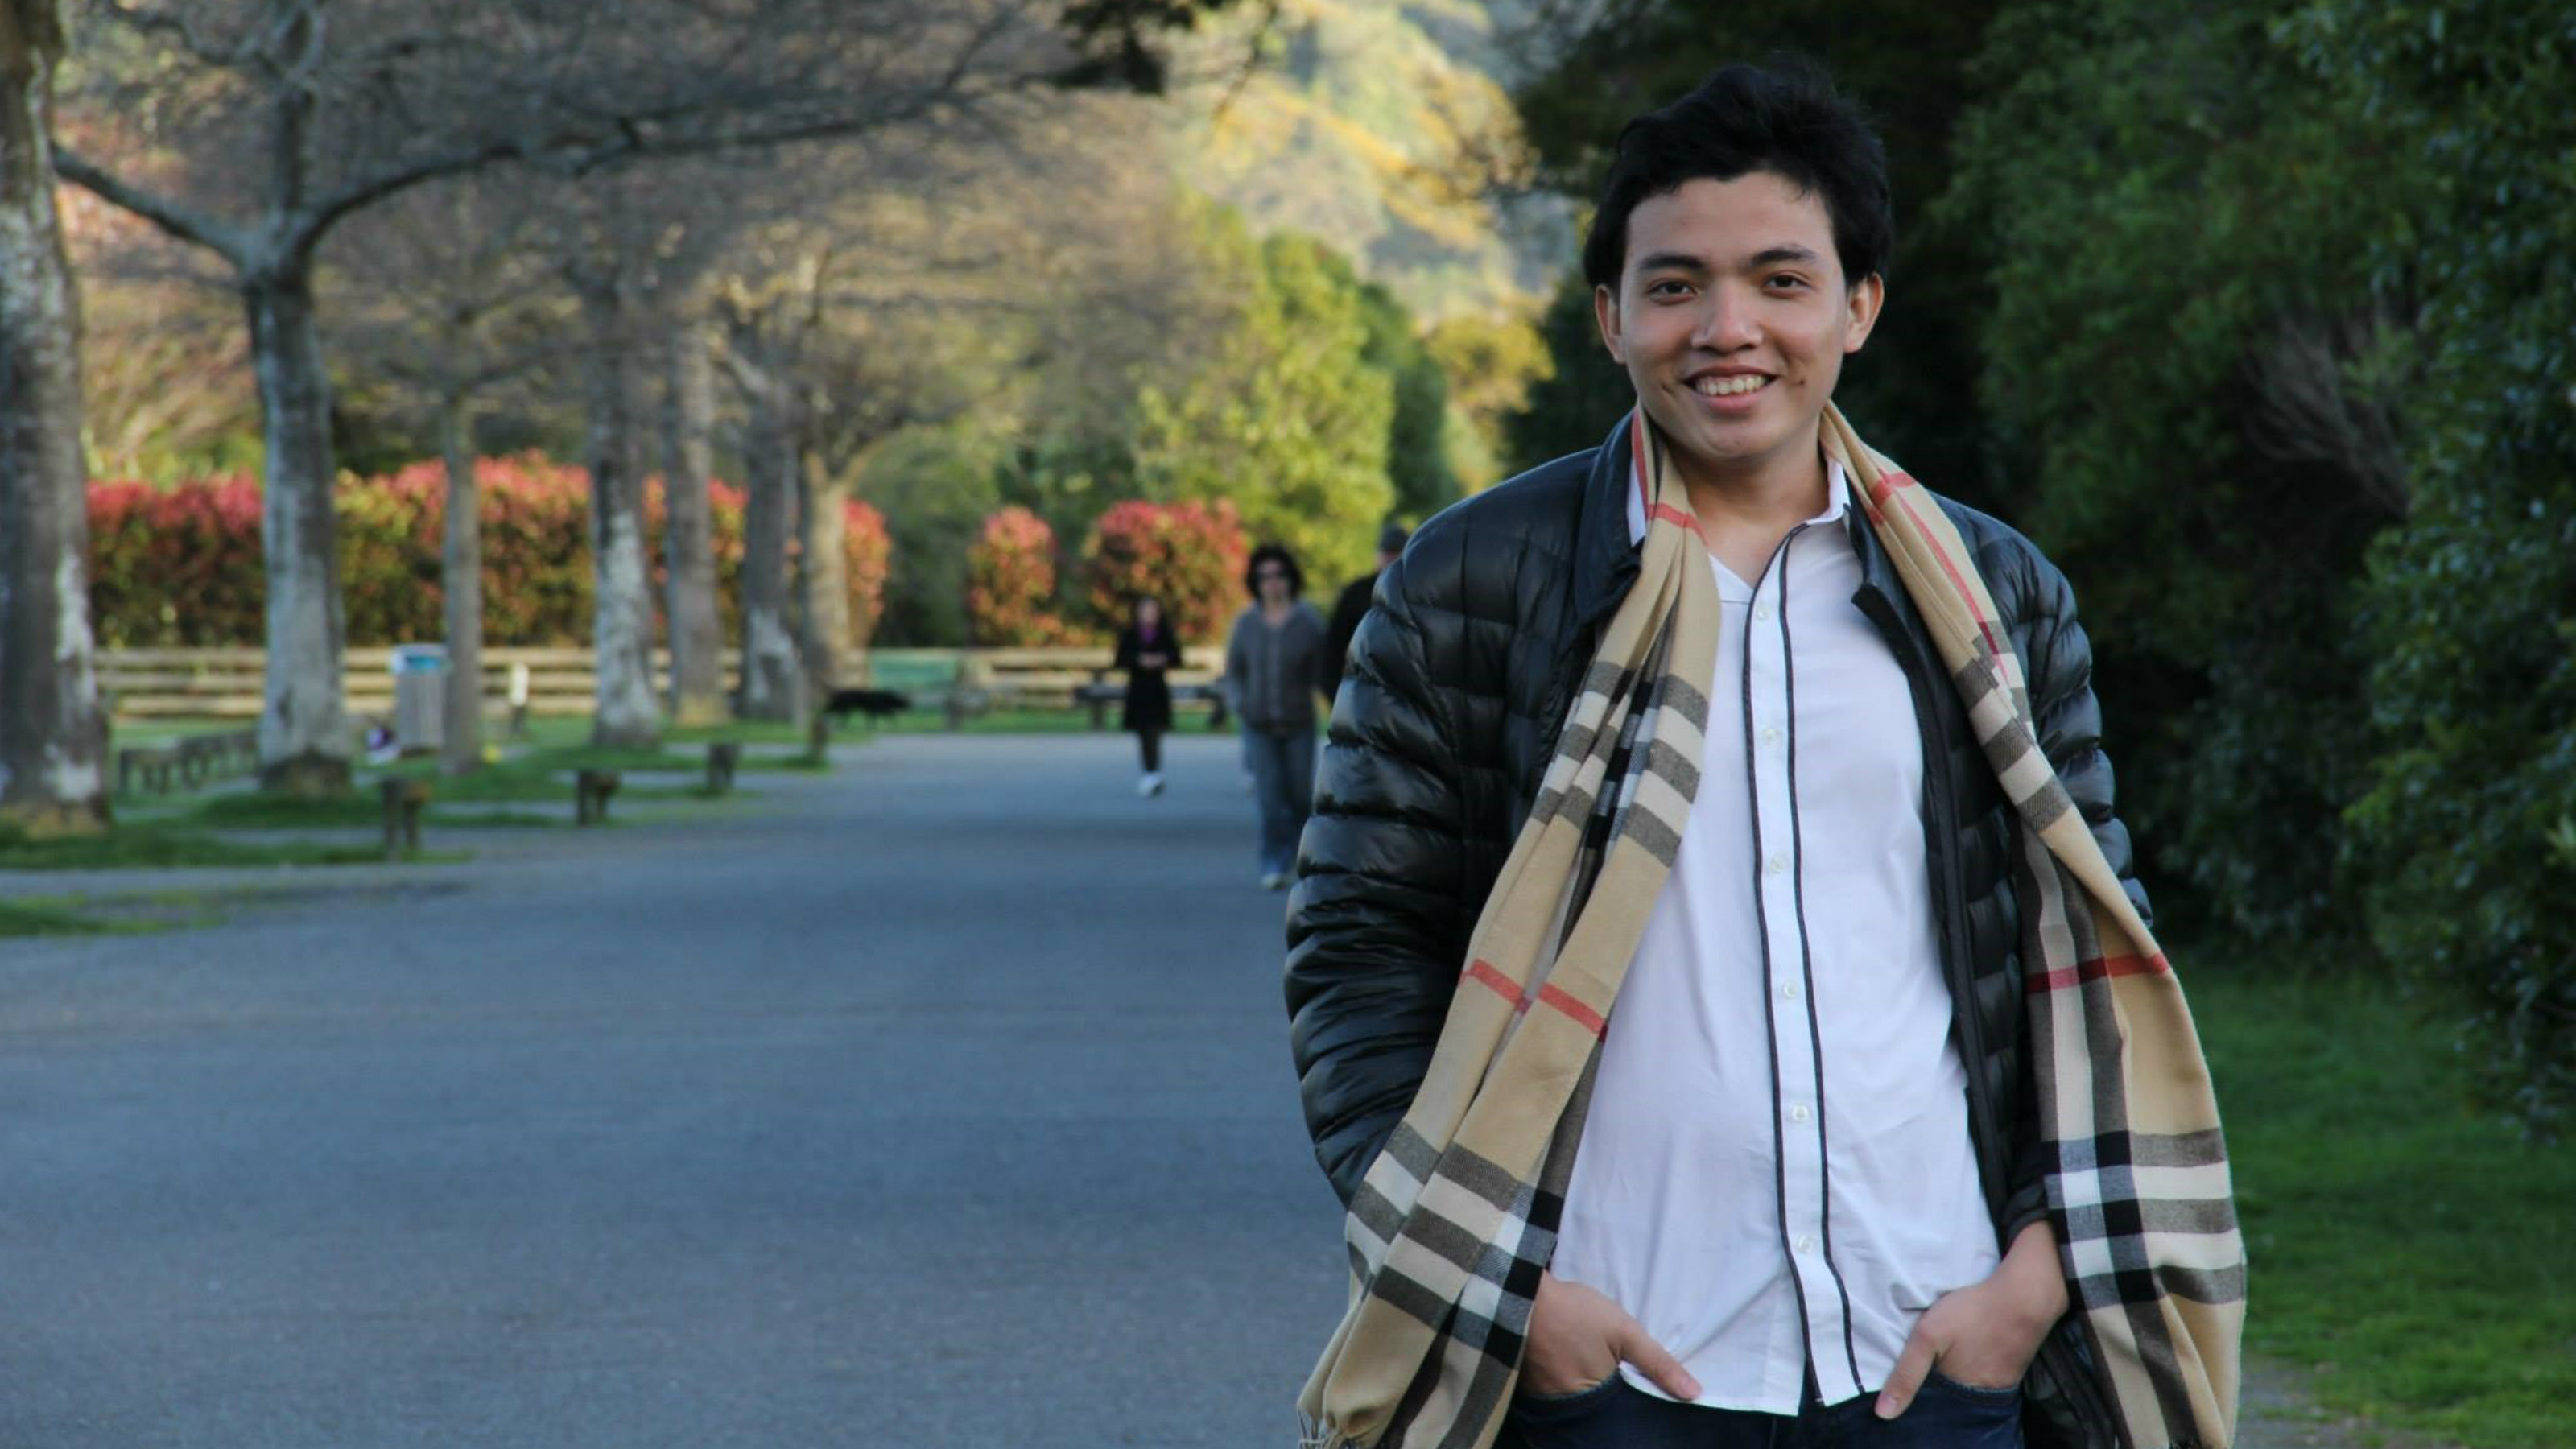 Wearing a white shirt, black jacket, and plaid scarf, Tran The Trung stands with his hands in his pockets on a park pathway shaded by autumnal coloured trees.